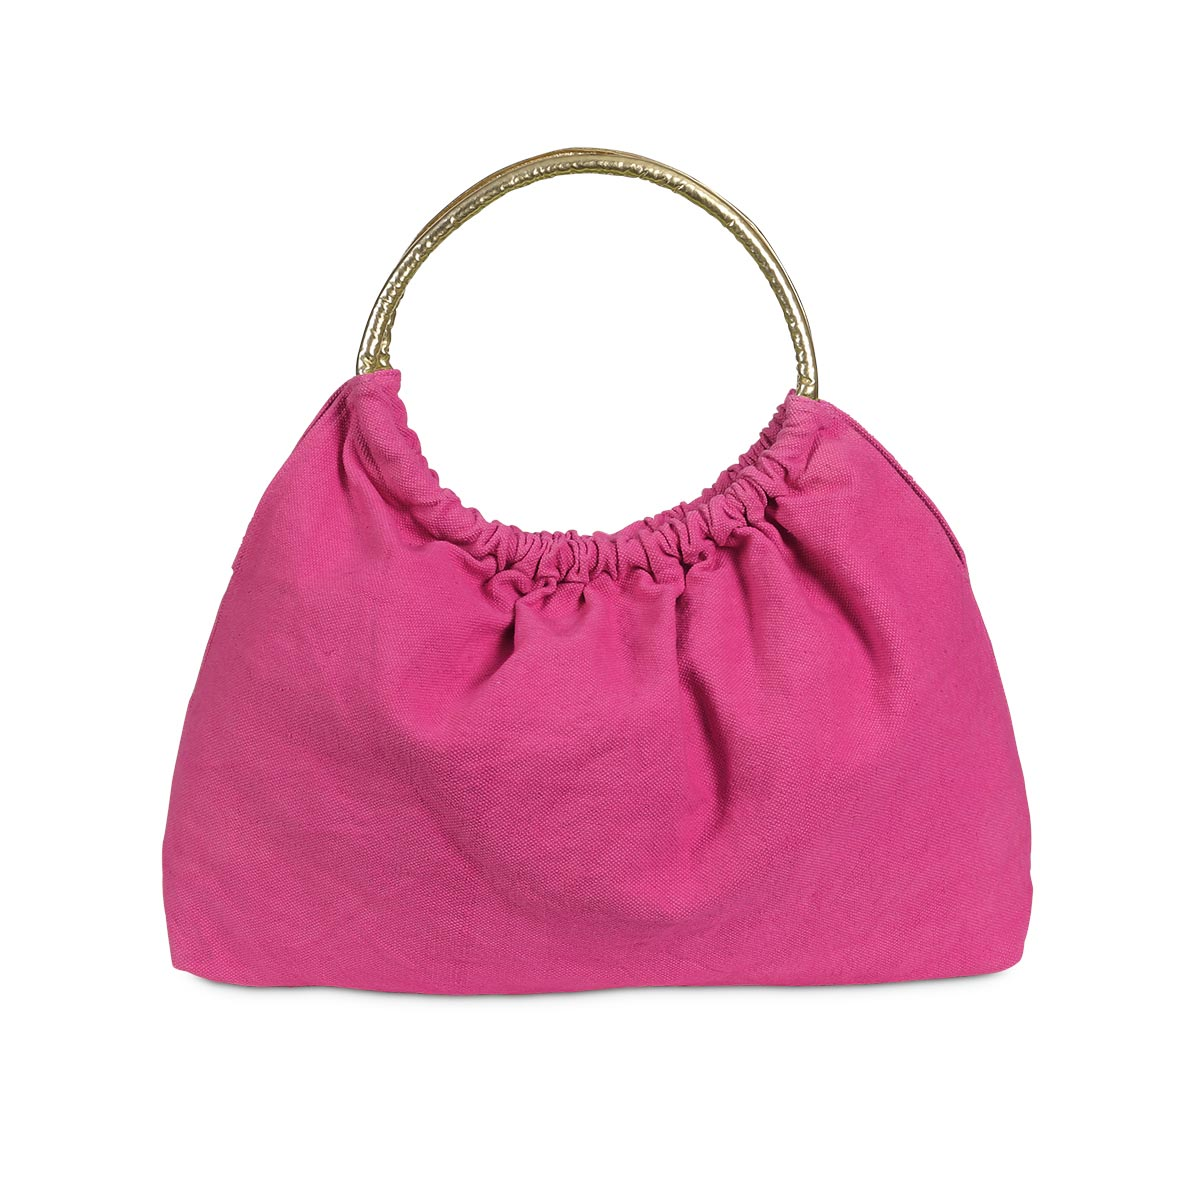 lauren tote pink, gold handle